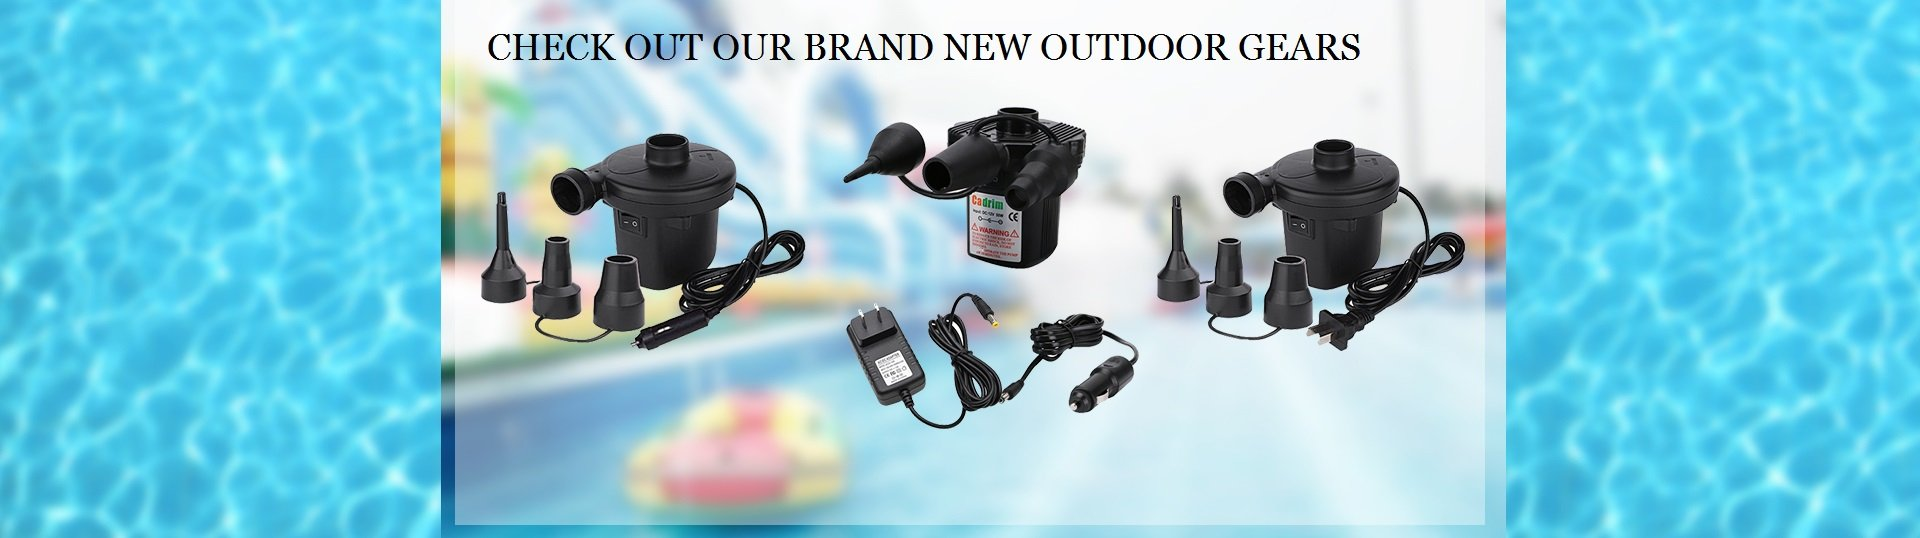 CHECK OUT OUR BRAND NEW OUTDOOR GEARS